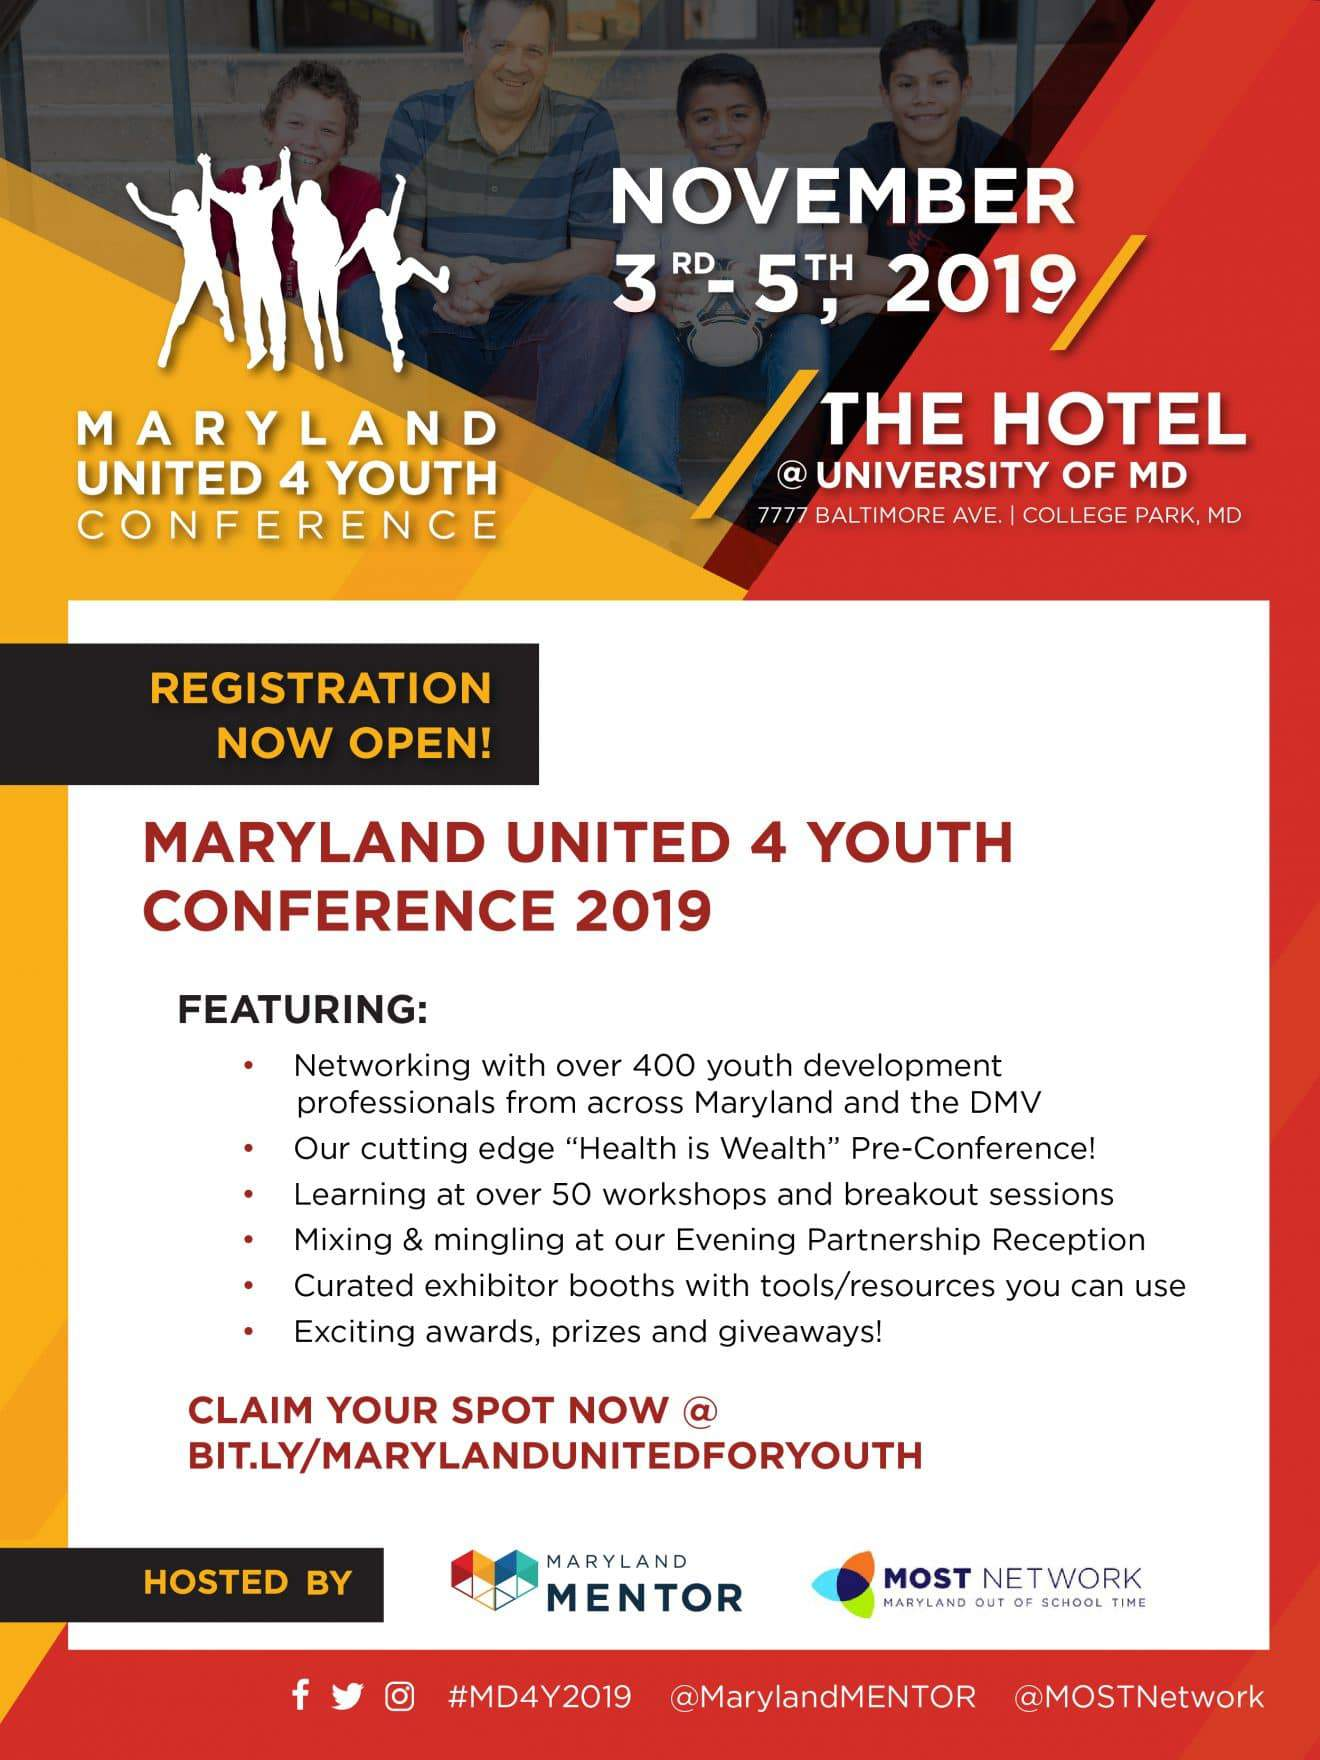 Maryland United for Youth Conference 2019